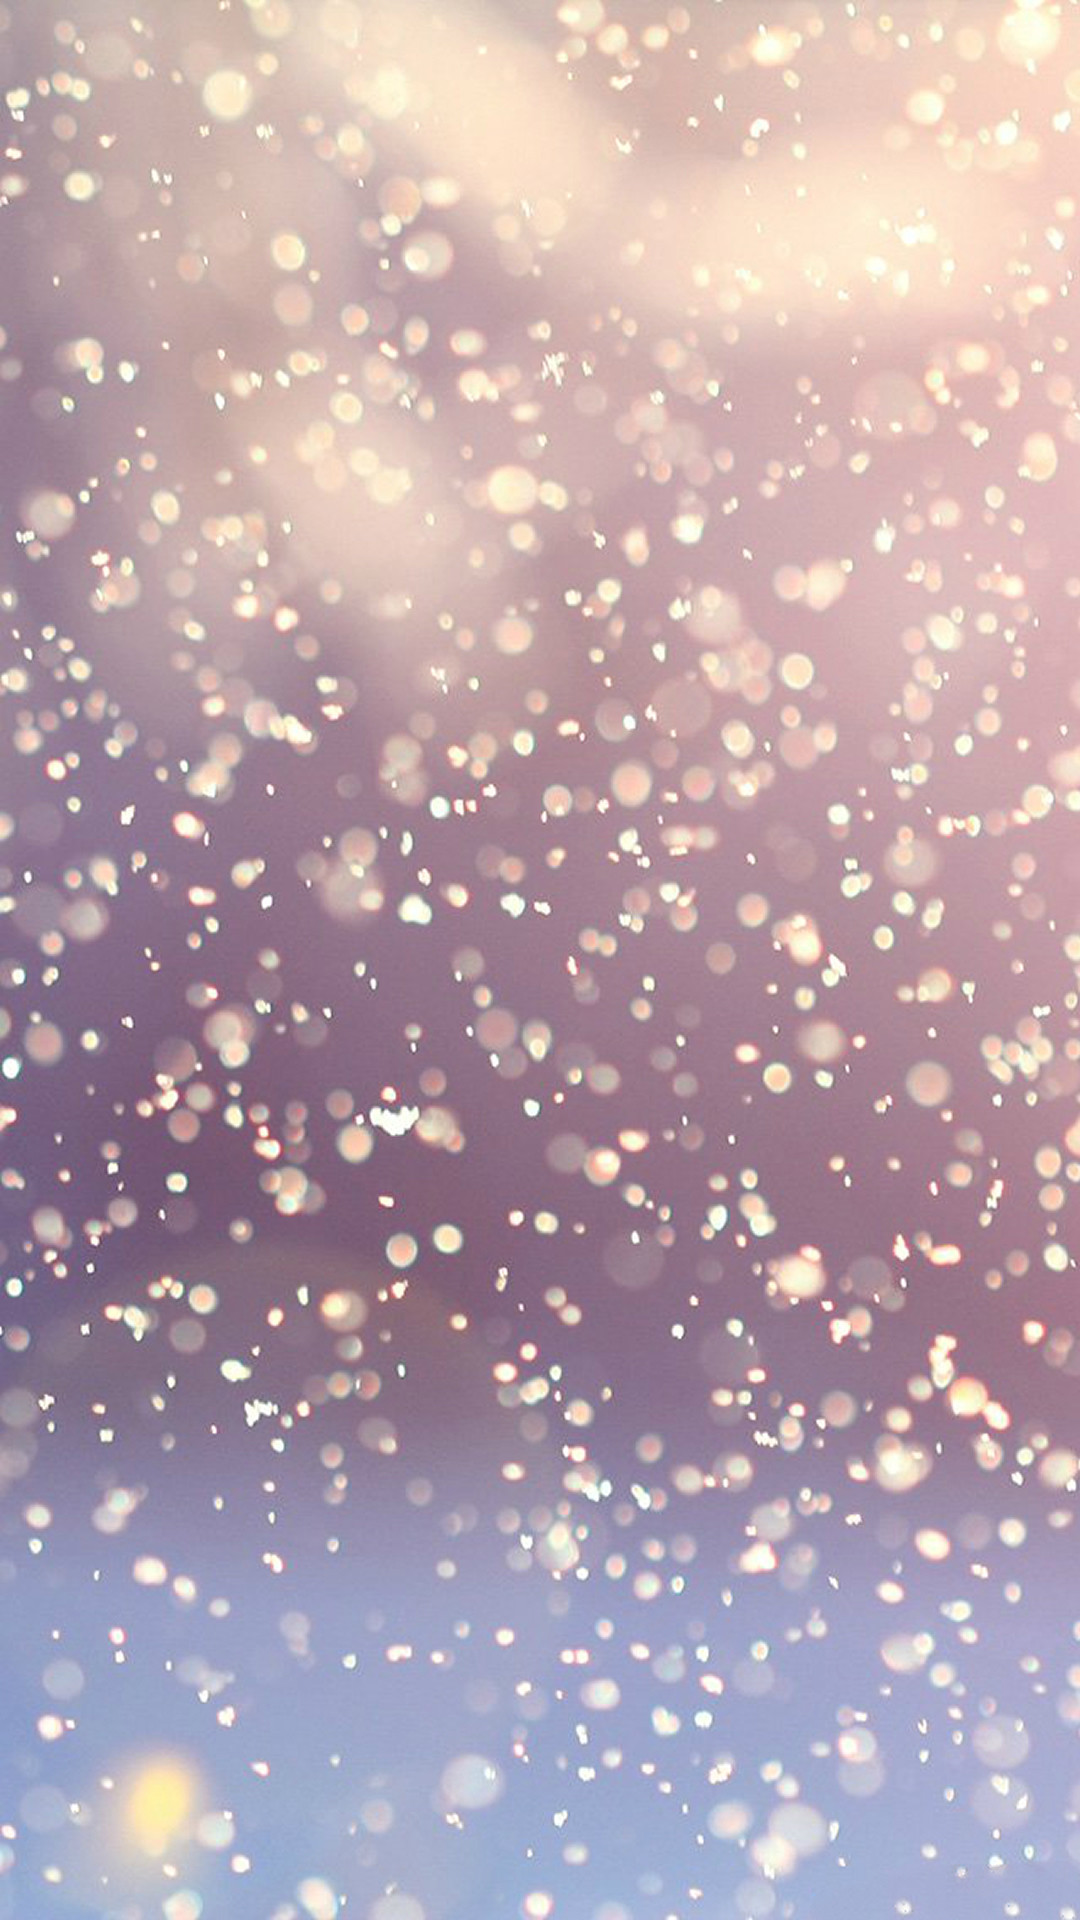 1080x1920 Bokeh Snow Flare Water Splash Pattern iPhone 6 wallpaper More